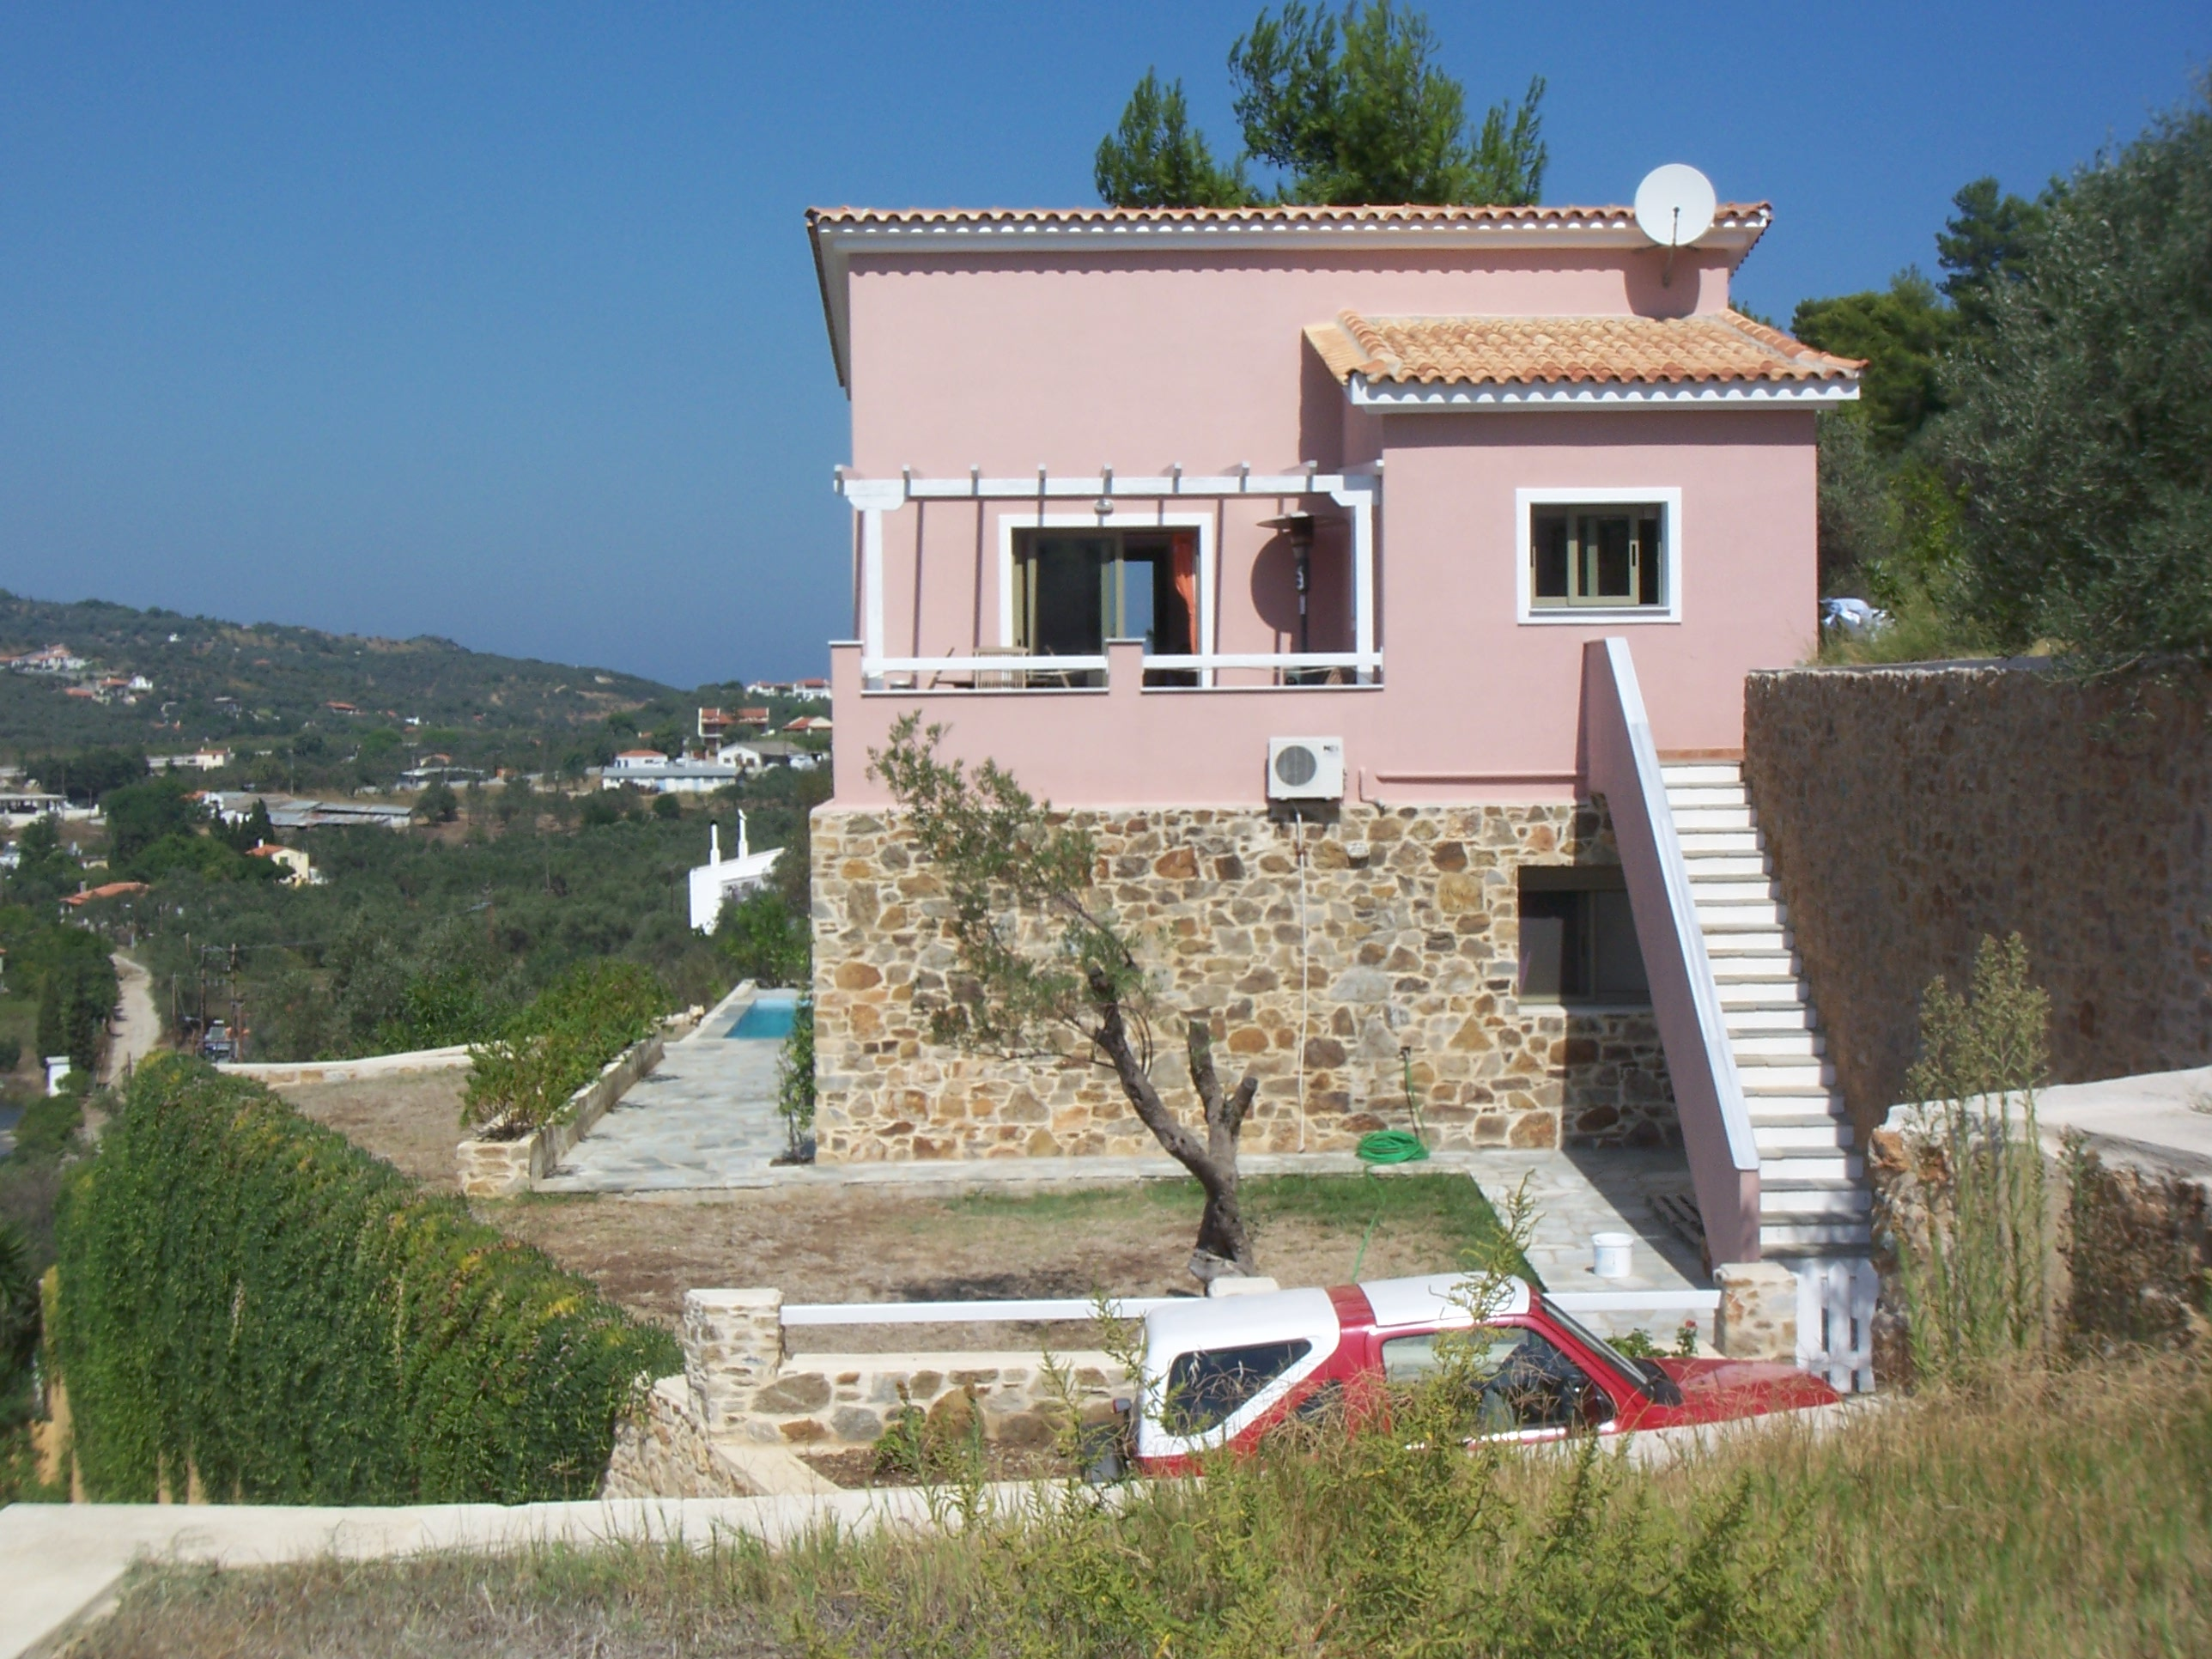 Villa and swimming pool at Aghios Georgos